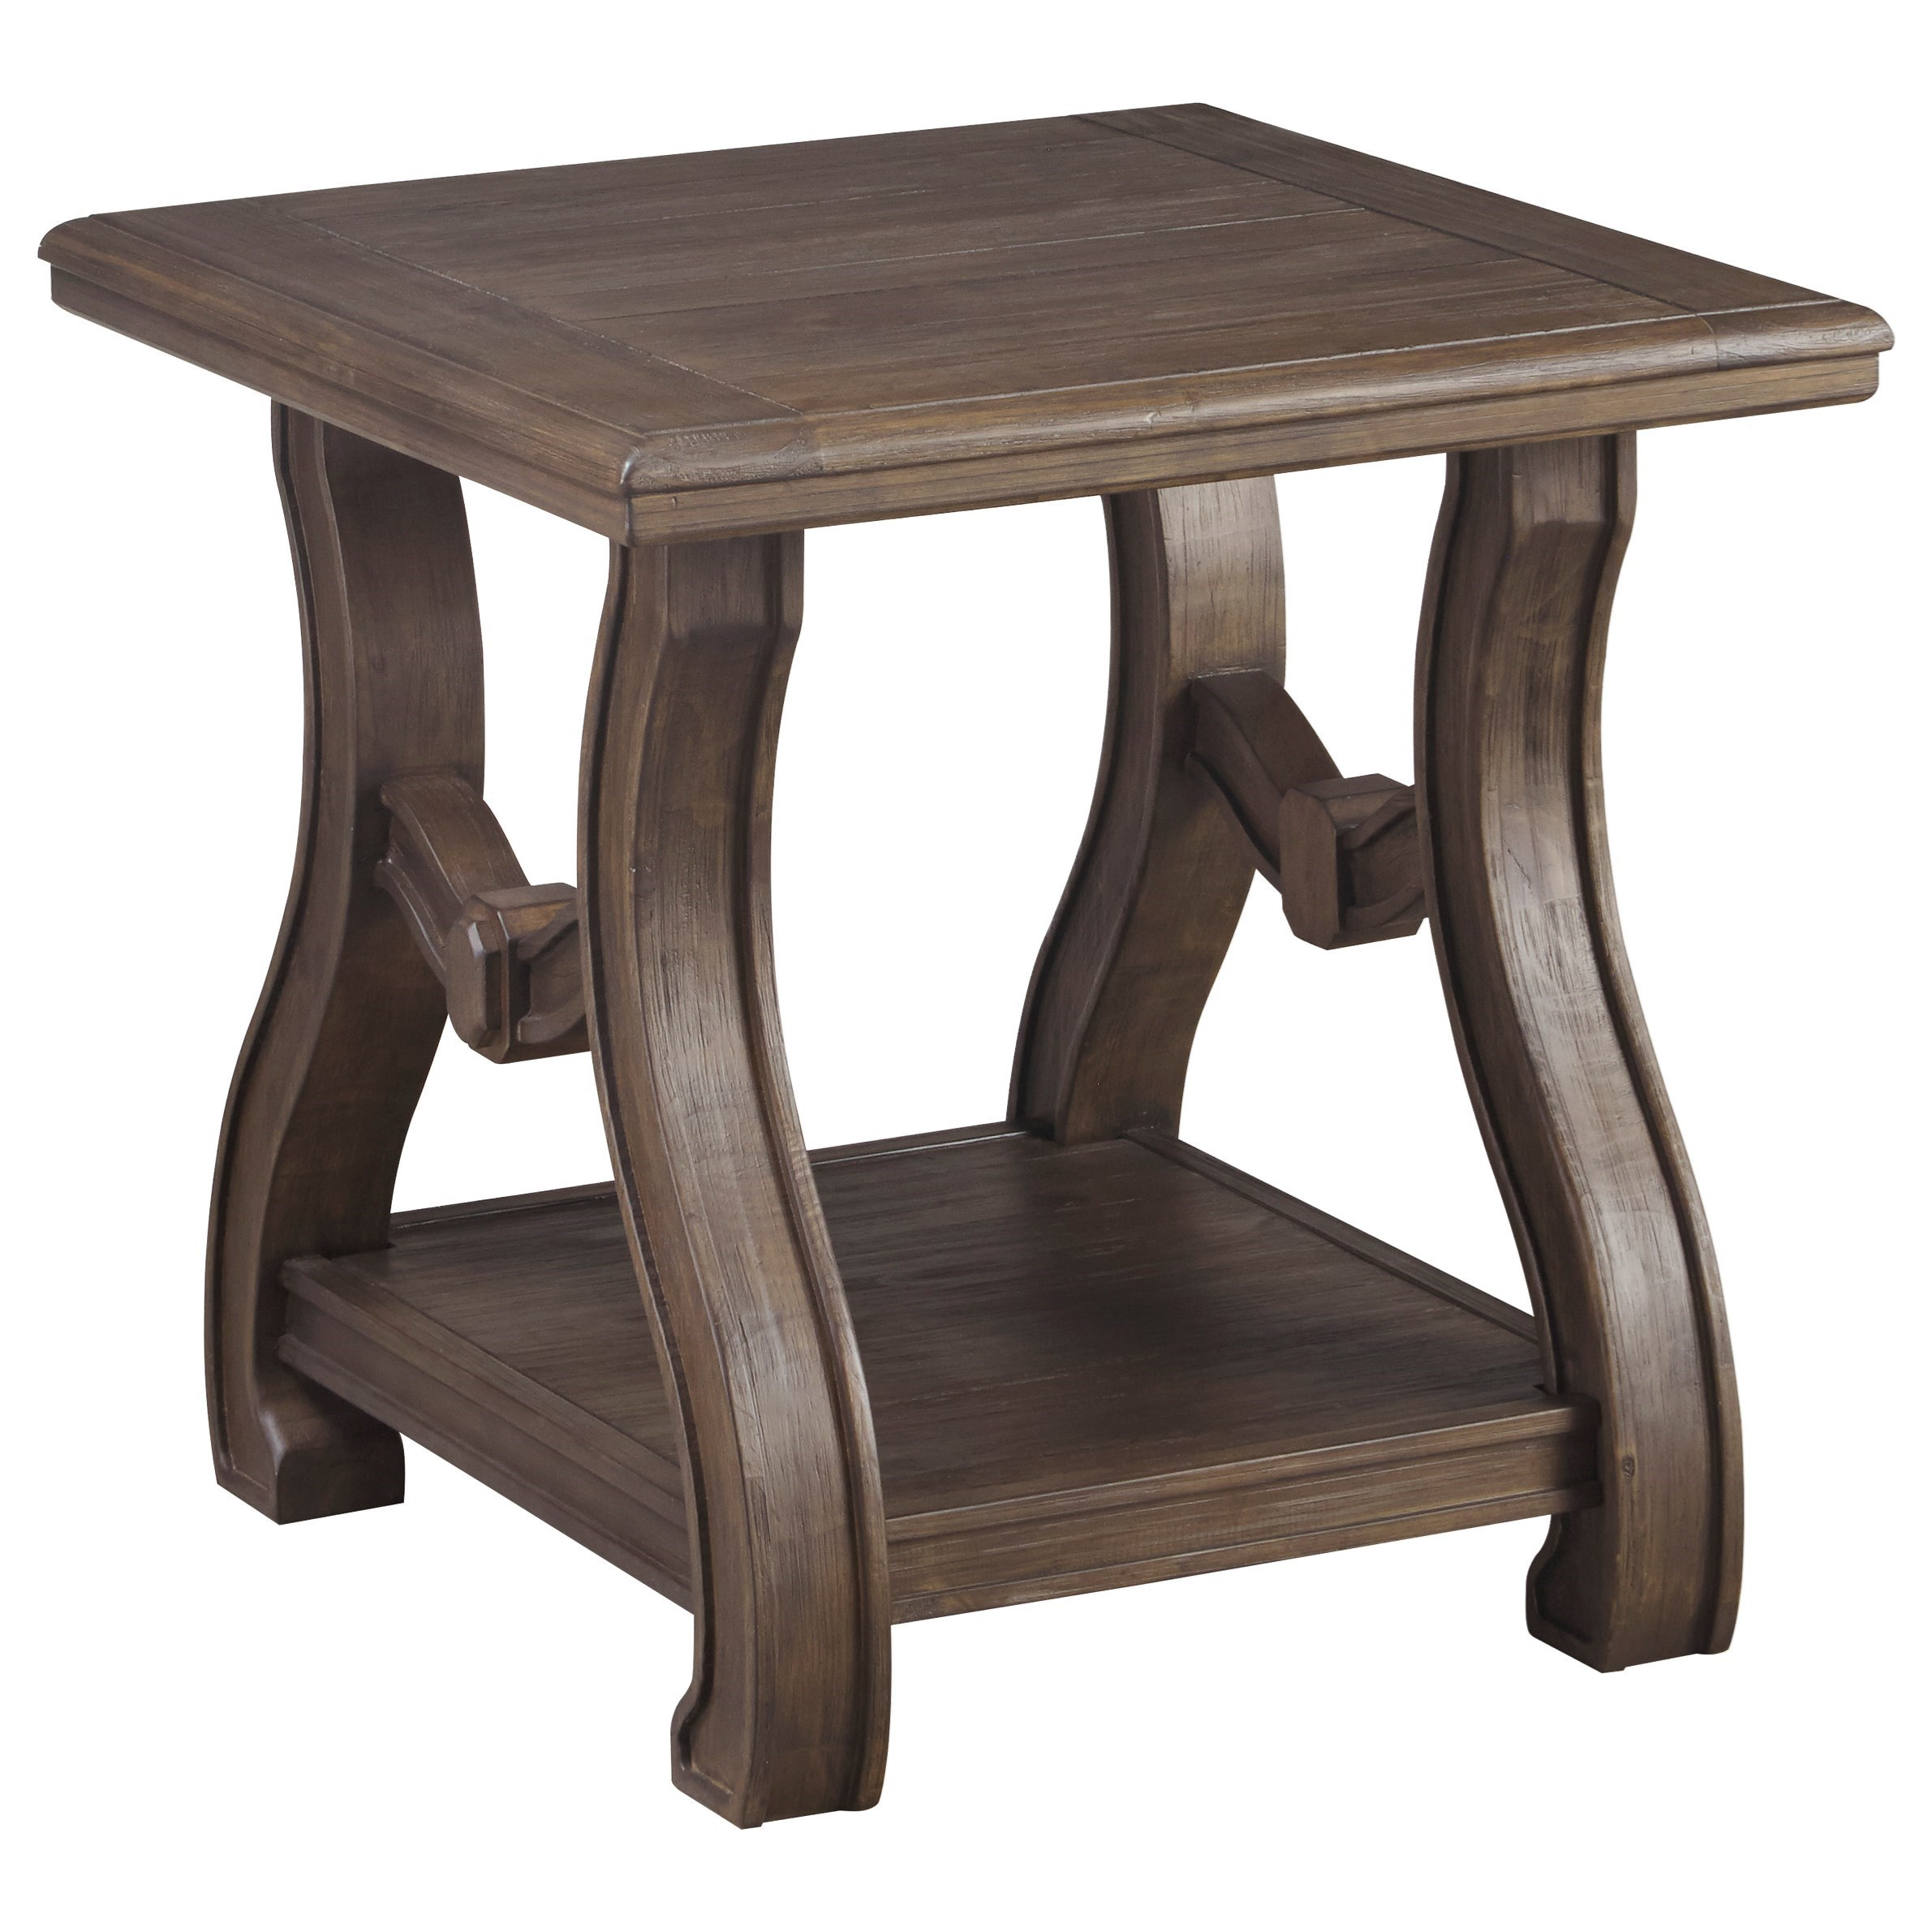 Tanobay Square End Table by Signature Design by Ashley at Pilgrim Furniture City